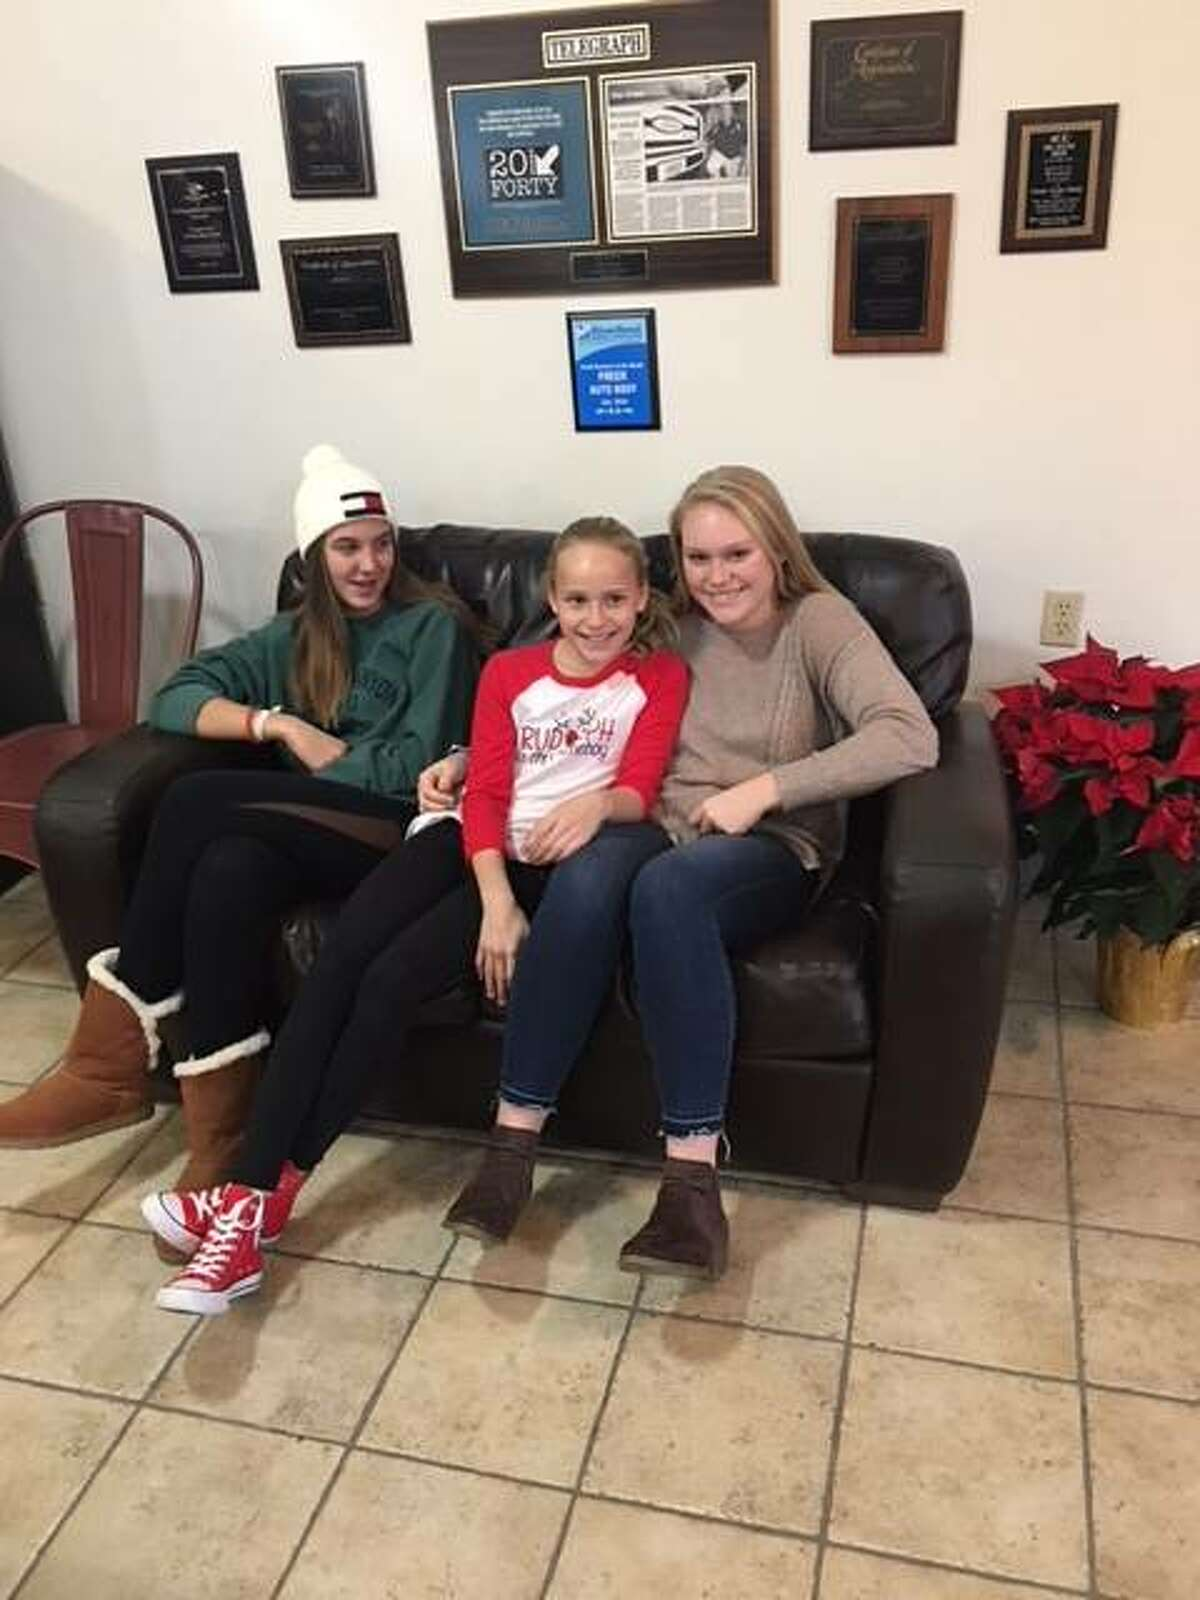 A young volunteer and friend, Riley Clancyput, left, with the Freer sisters, Lily Freer, center, and Taylor Freer, at Freer Auto Body's Community Christmas fundraiser, Cookies and Cocoa, last Thursday held at the Freer family business in Godfrey.